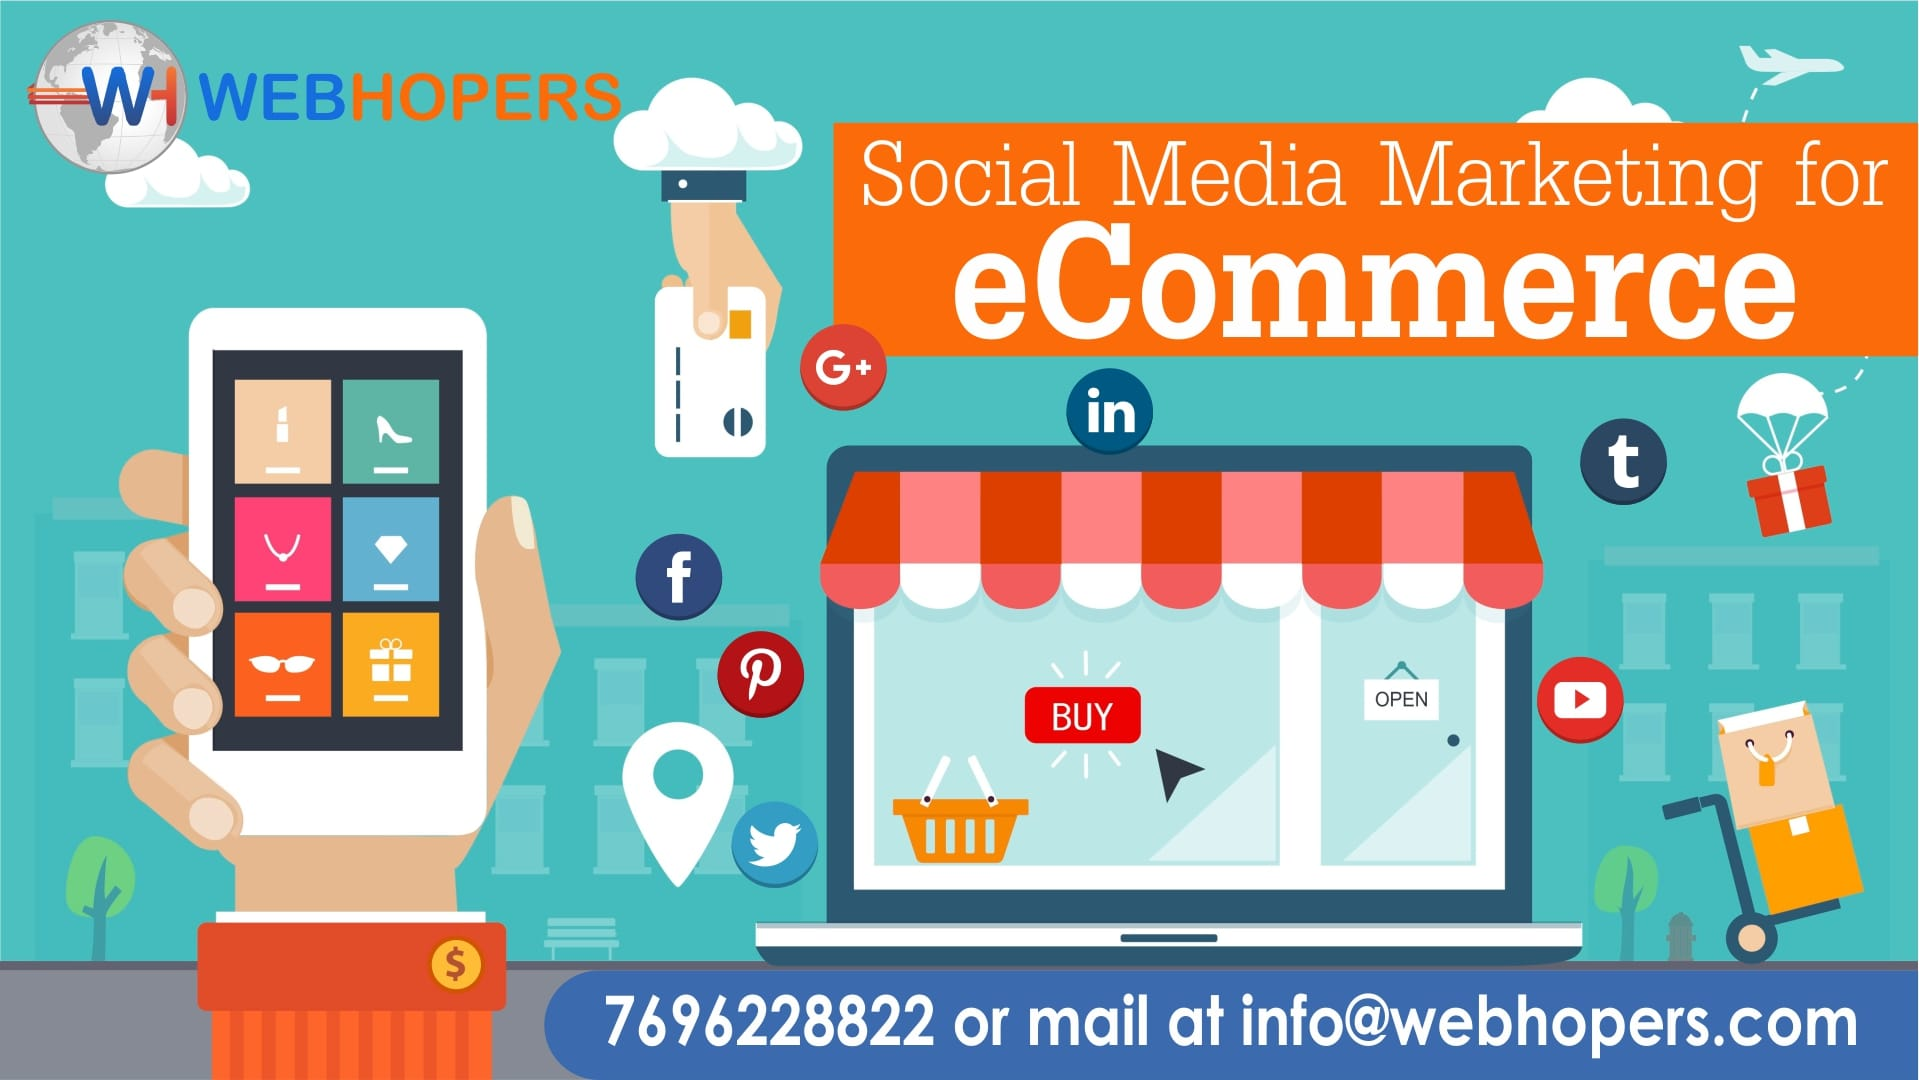 Social Media Marketing Services for eCommerce